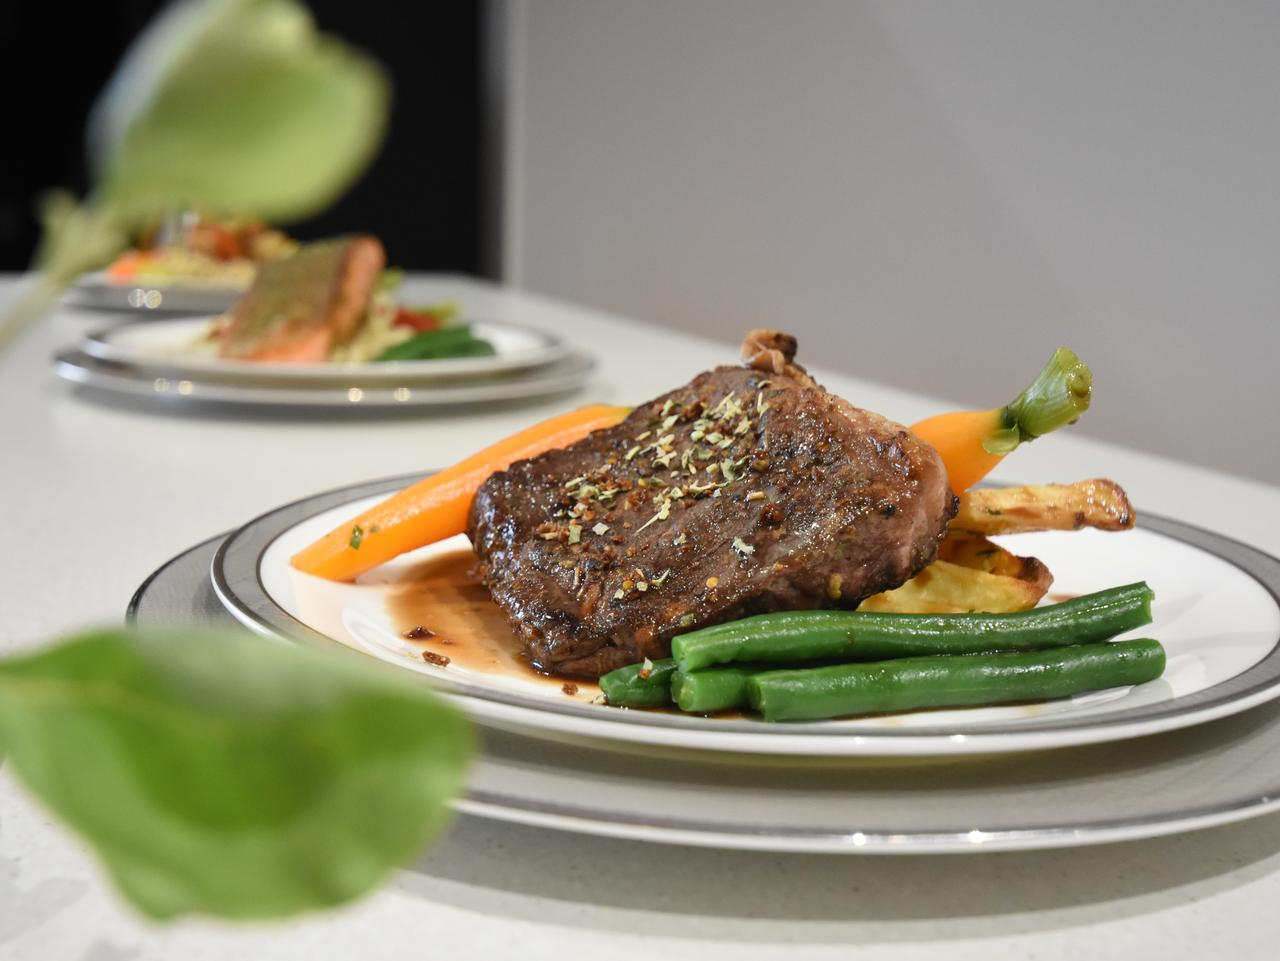 ESCAPE: The salt bush & wild tomato seasoned Jack's Creek wagyu sirloin dish for first class passengers at the tour through airline food caterer Gate Gourmet's Mascot base in Sydney during the launch of Singapore Airline's new 50th Anniversary menu. Picture: Simon Tsang